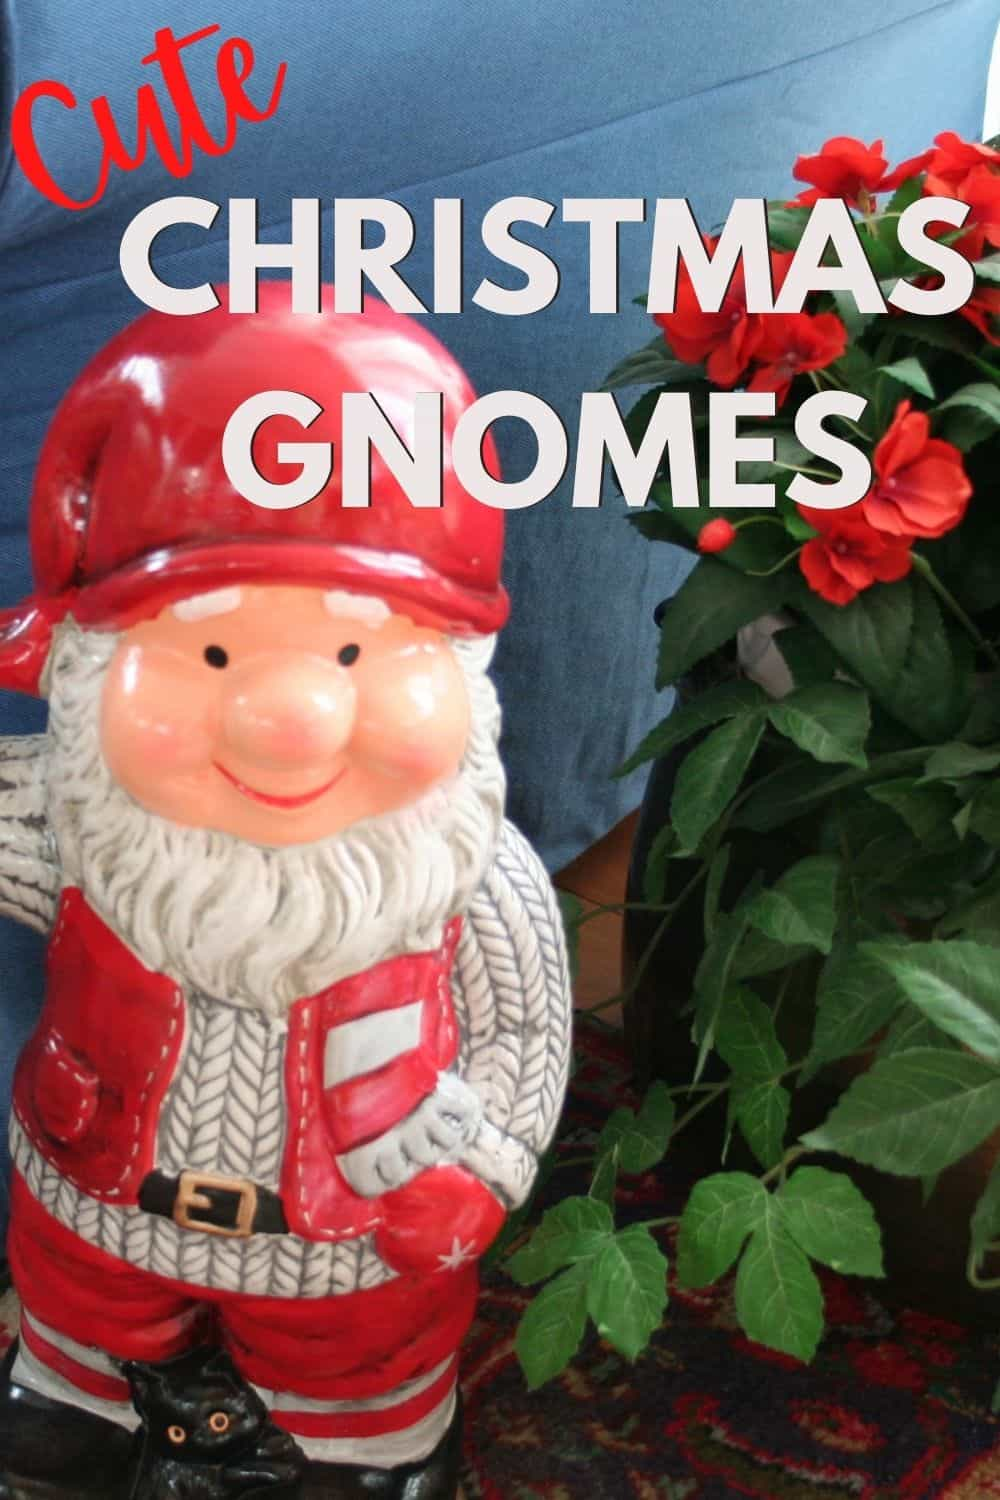 Cute Christmas gnomes for a whimsical holiday